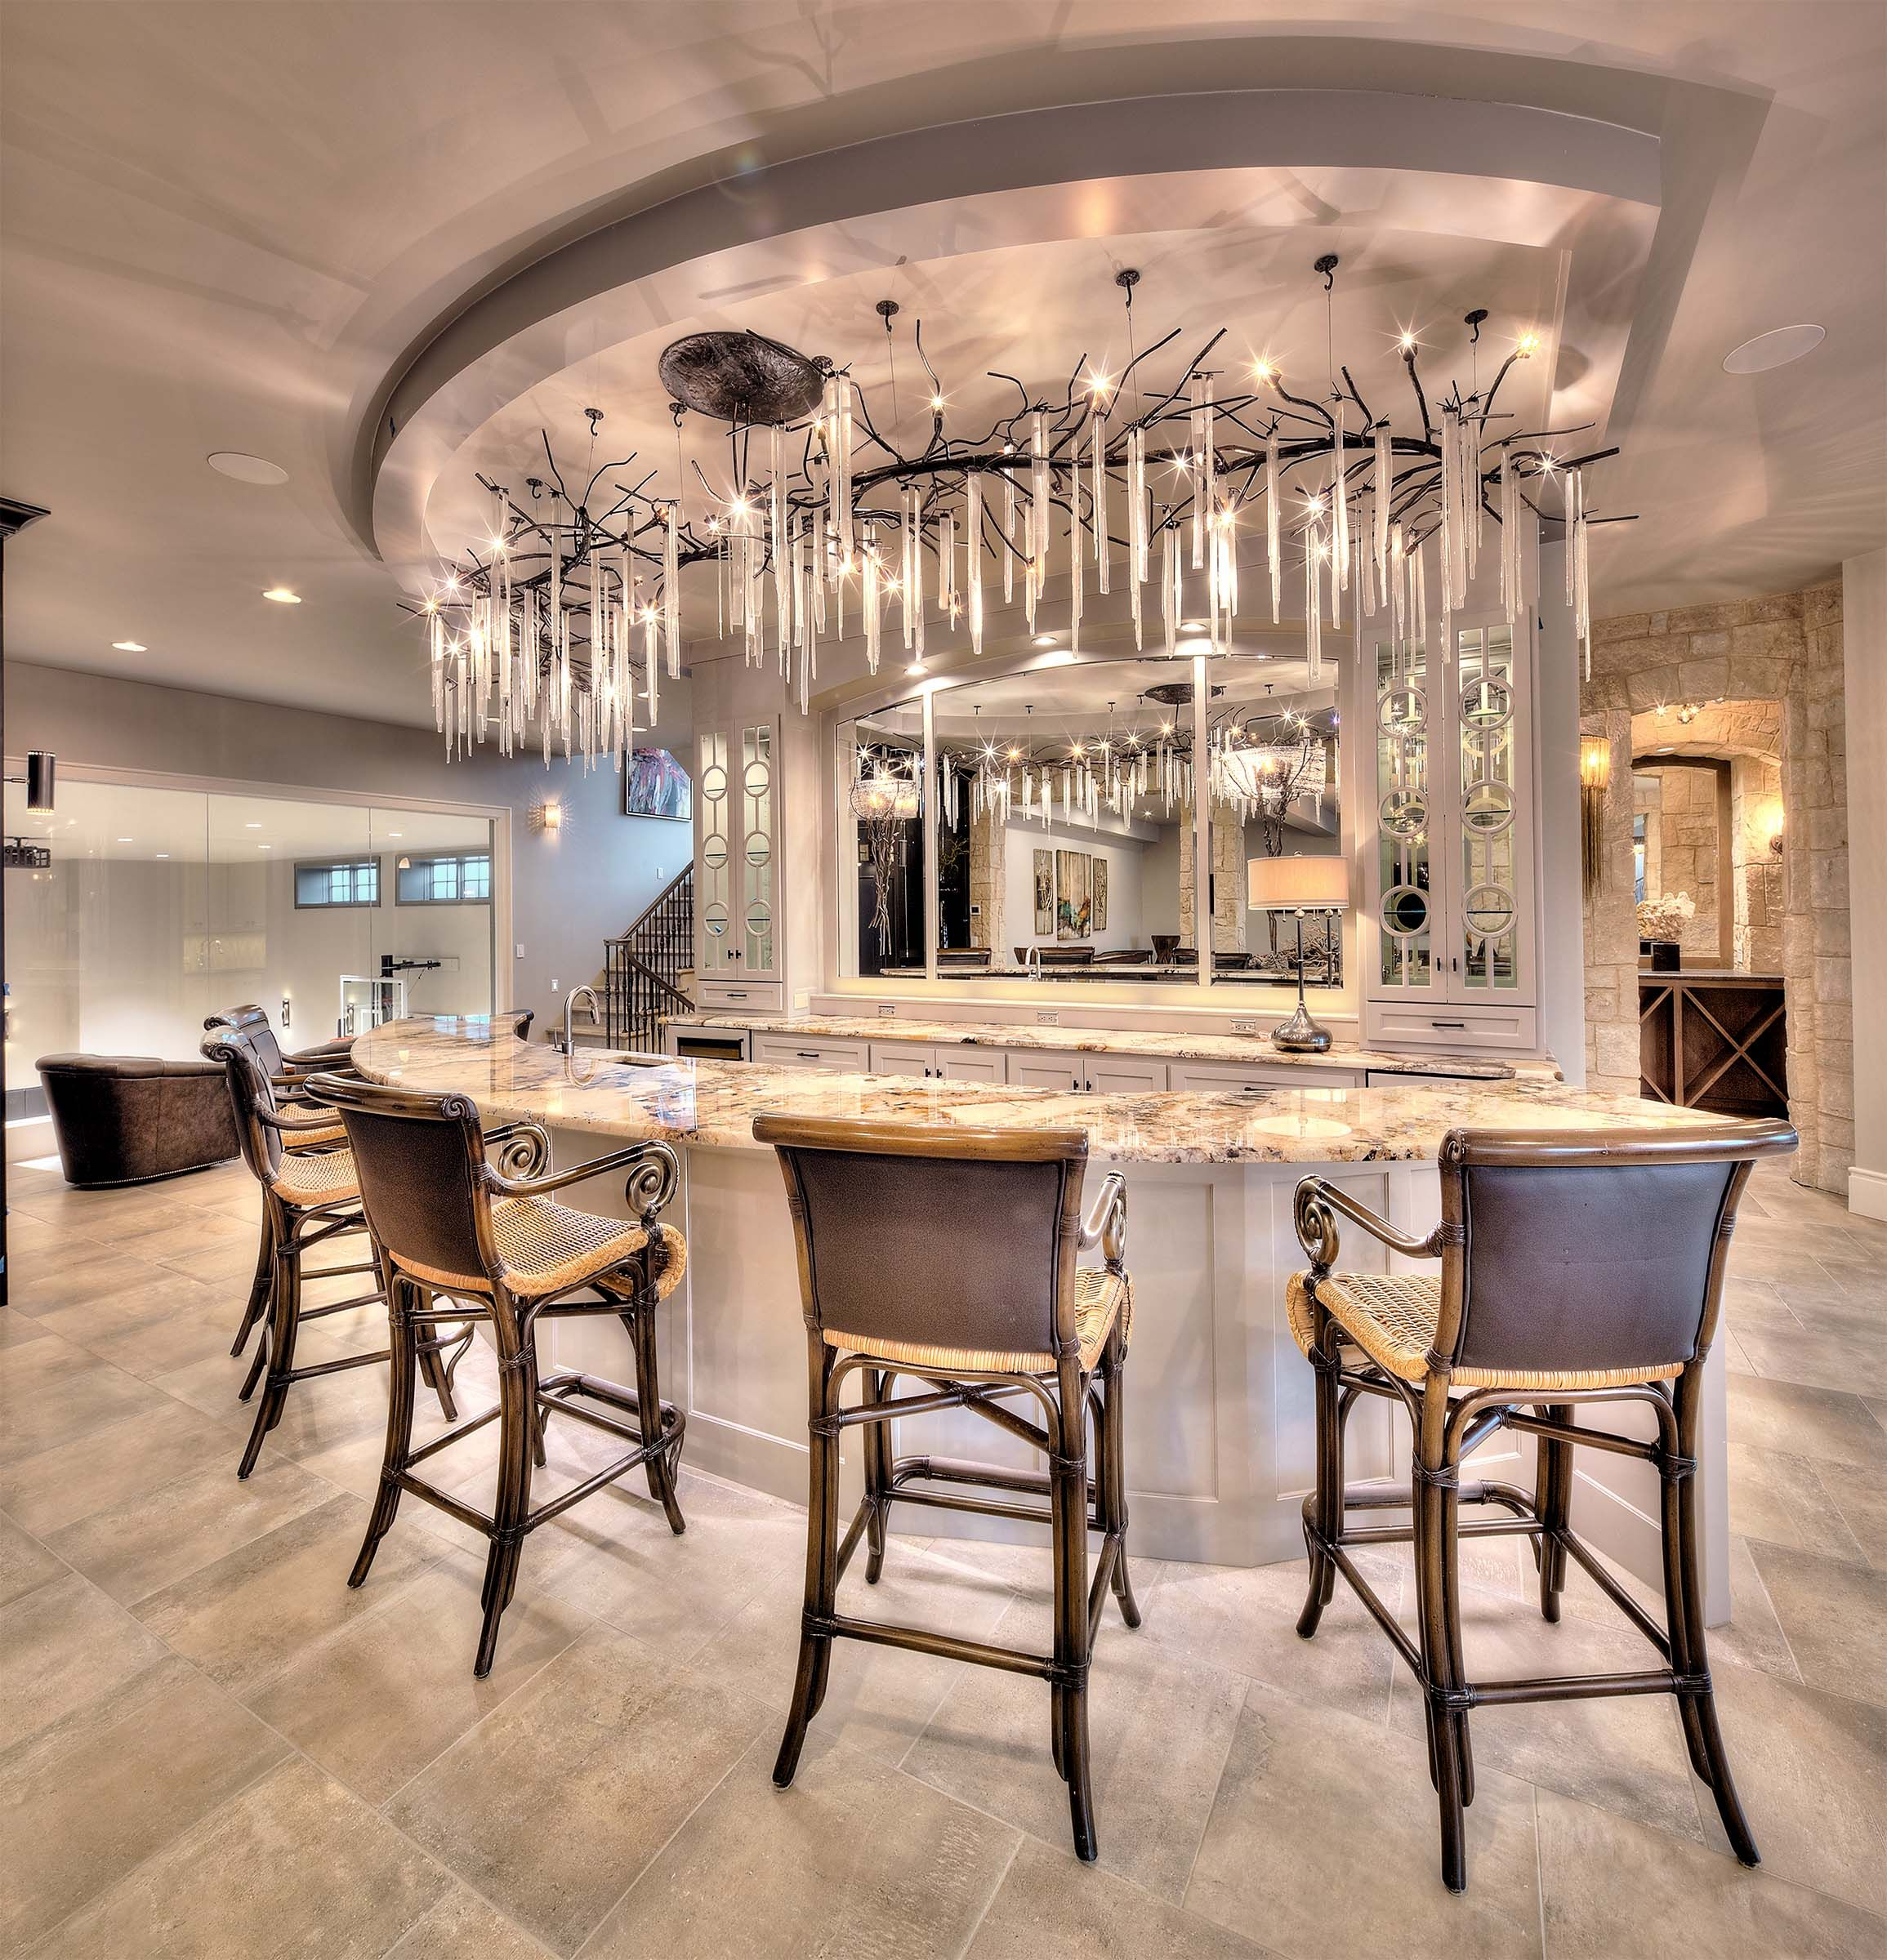 Kitchen on lower level bar seating focal point chandelier kitchen on lower level bar seating focal point chandelier mirrored wall granite aloadofball Gallery